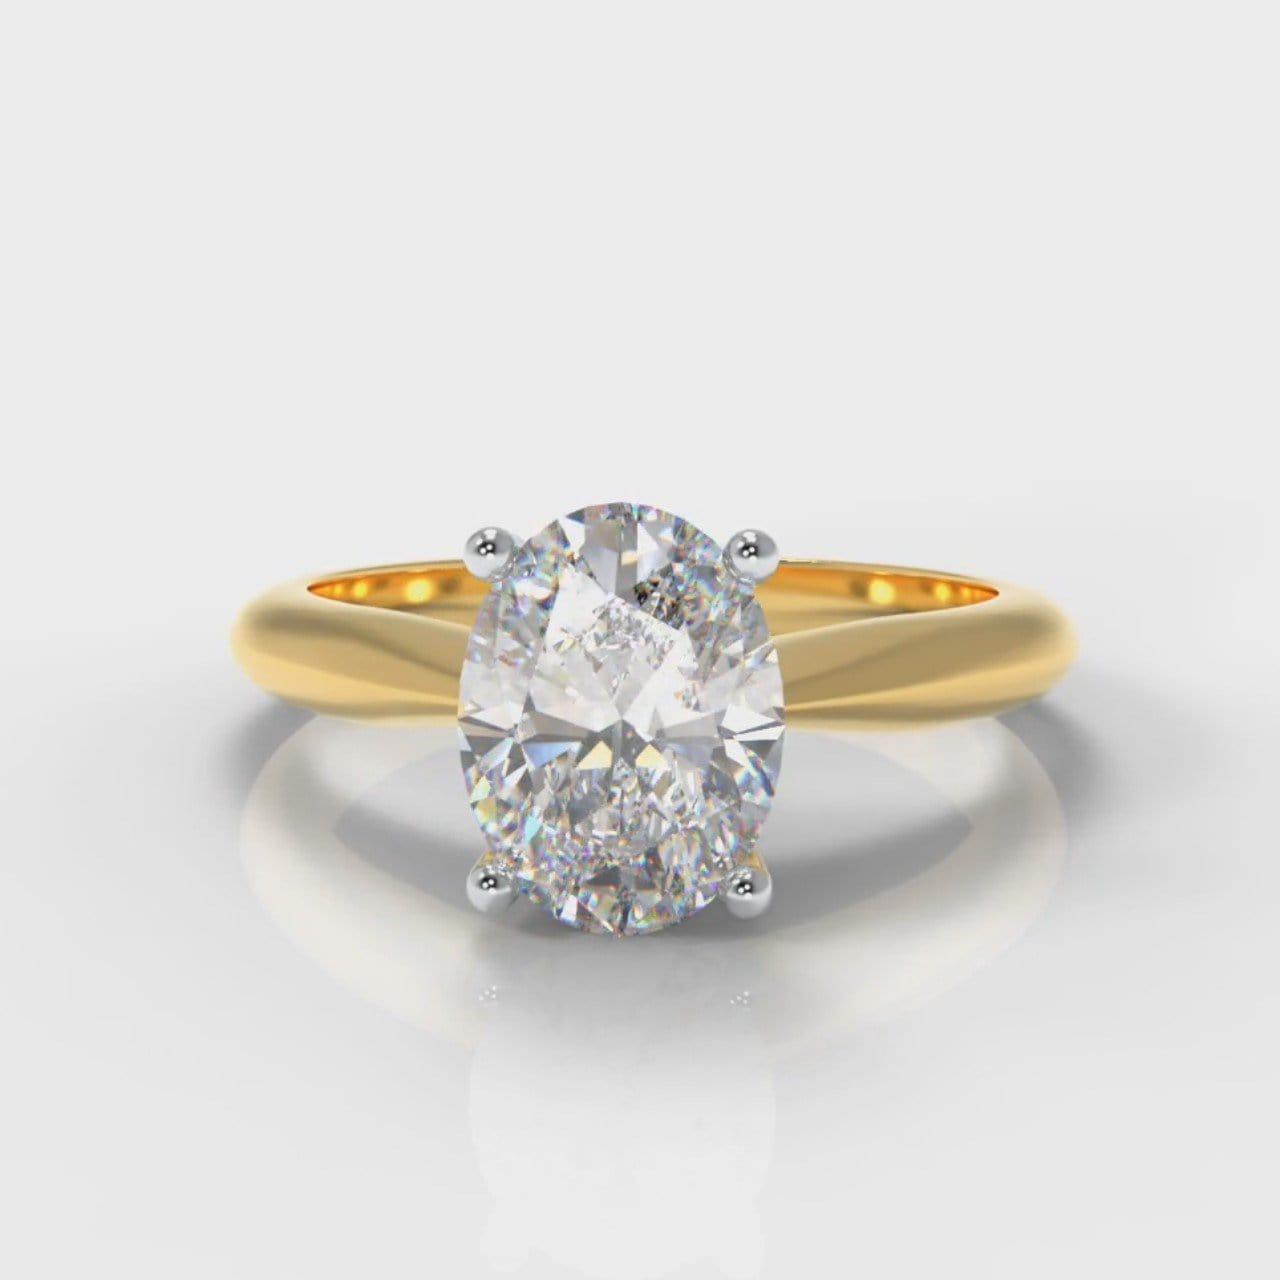 Carrée Solitaire Oval Diamond Engagement Ring - Yellow Gold